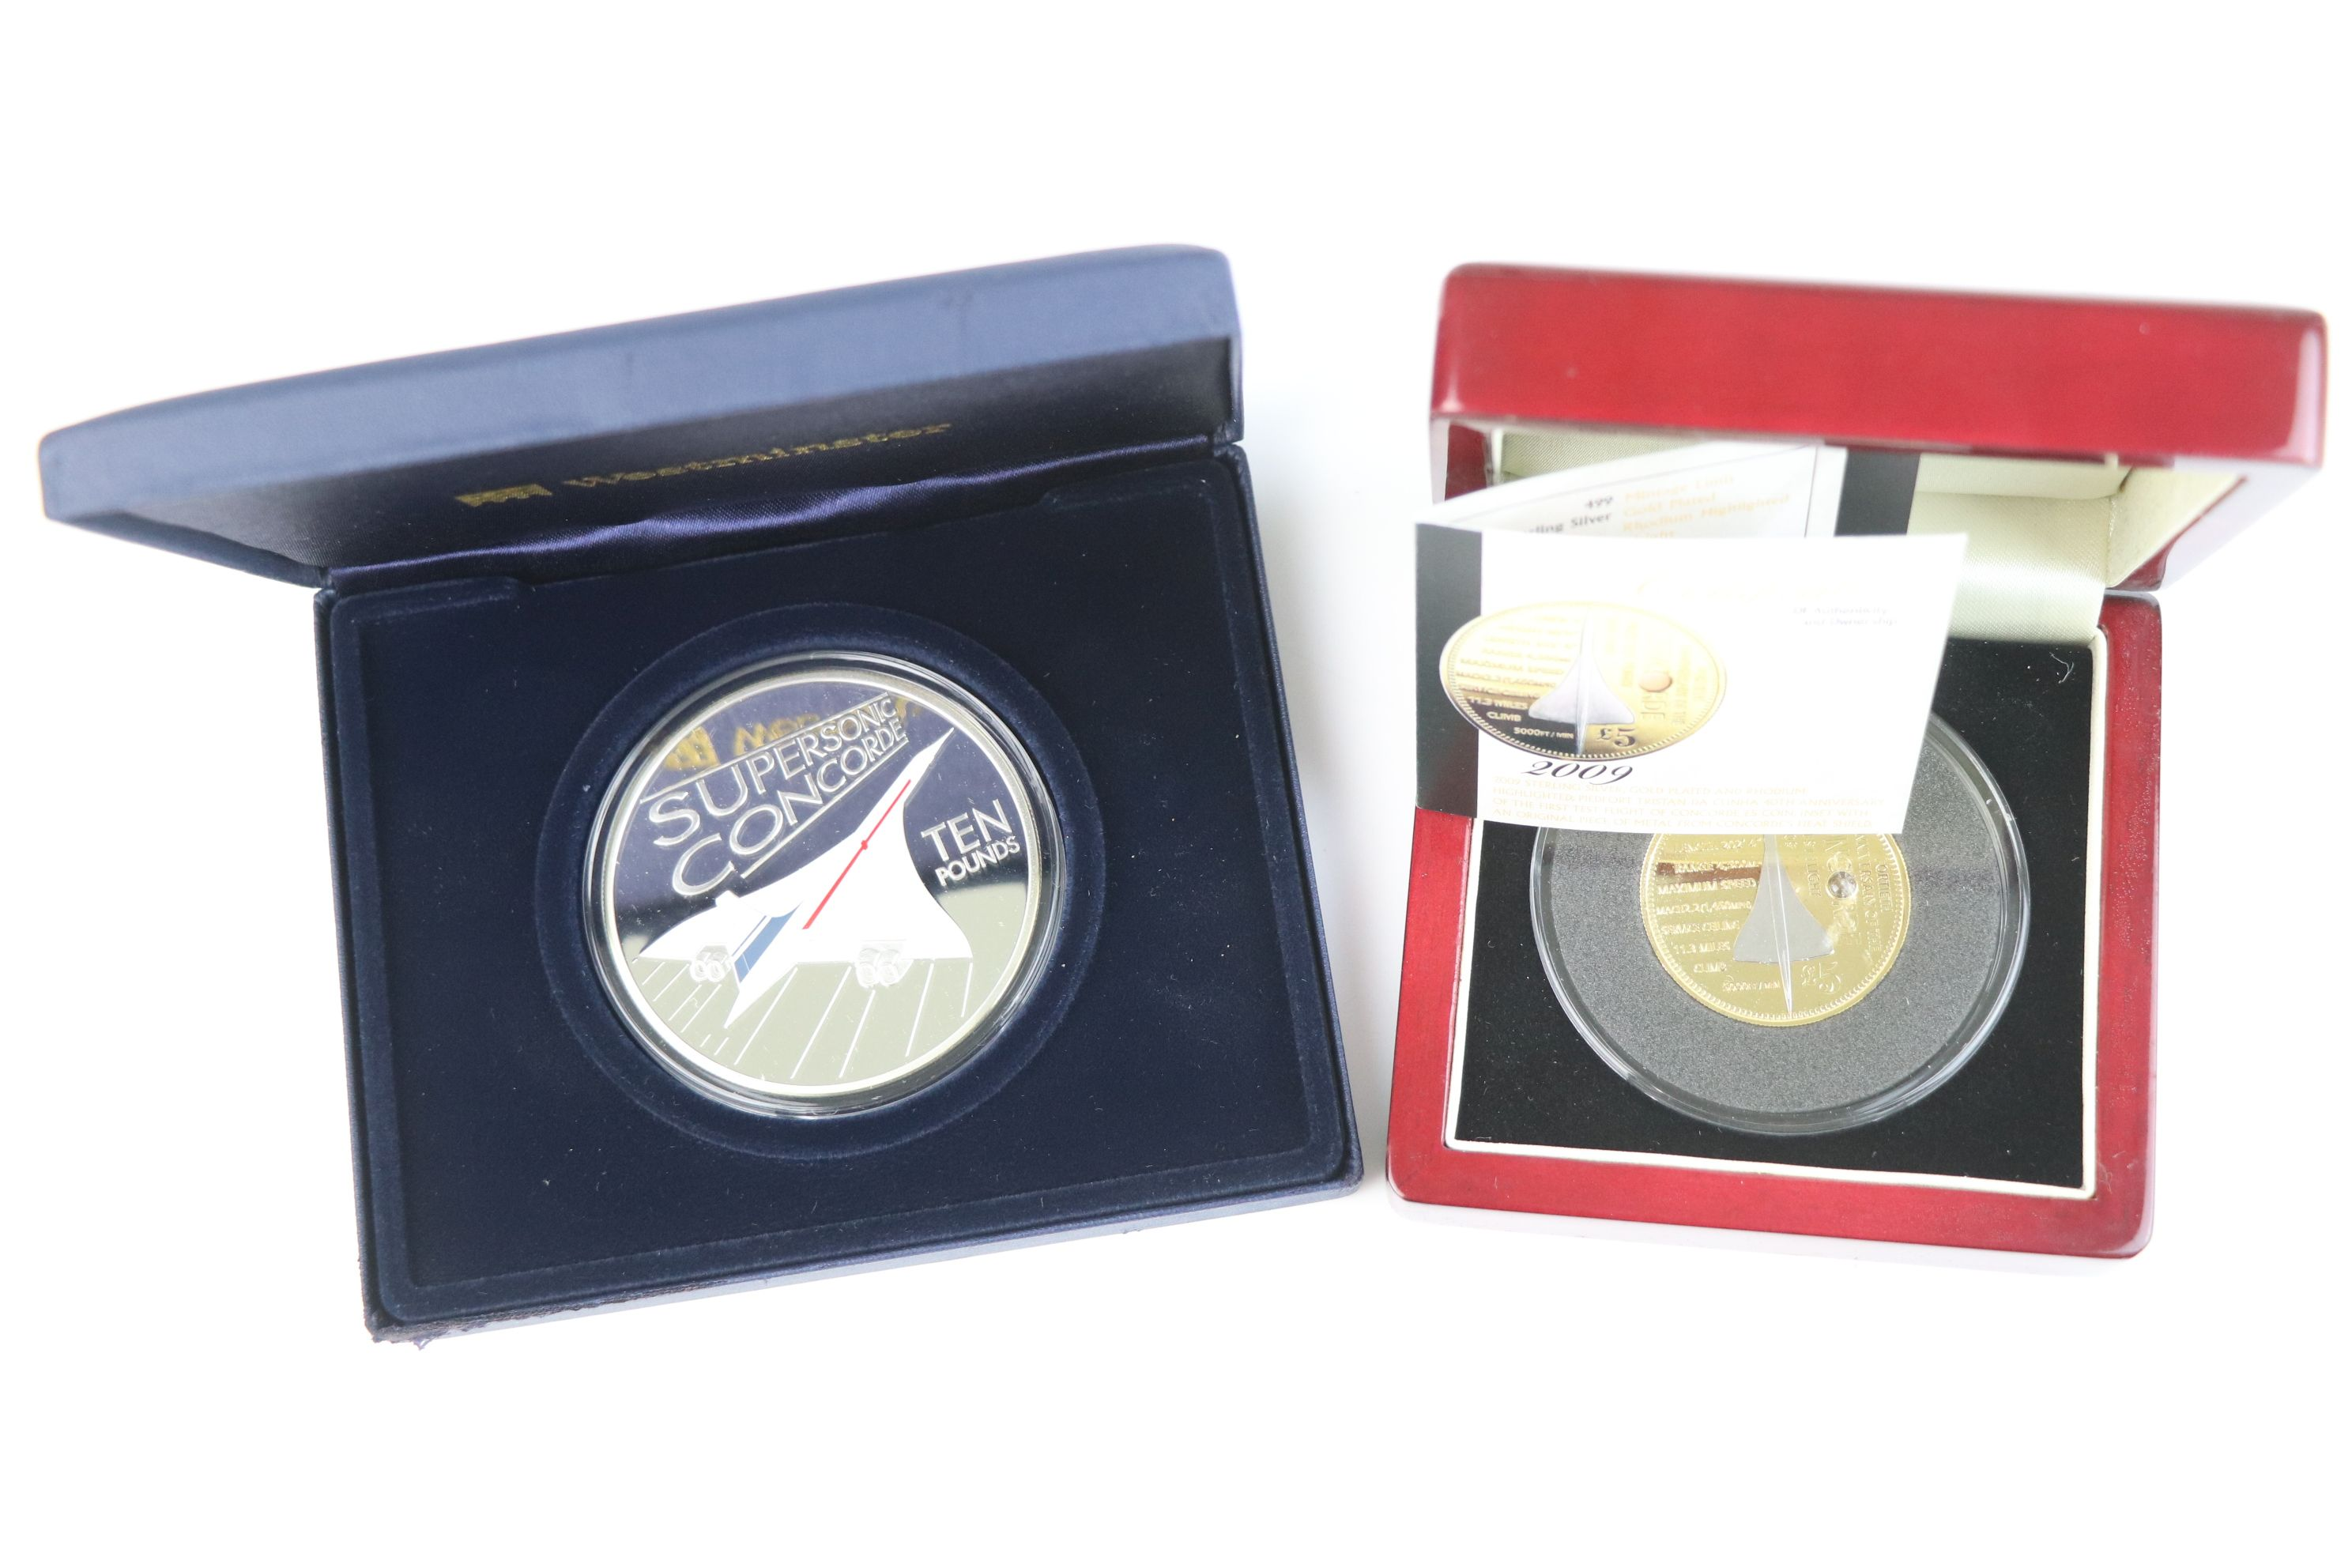 A cased Silver proof gold plated Concorde Piedfort £5 coin complete with C.O.A. together with a